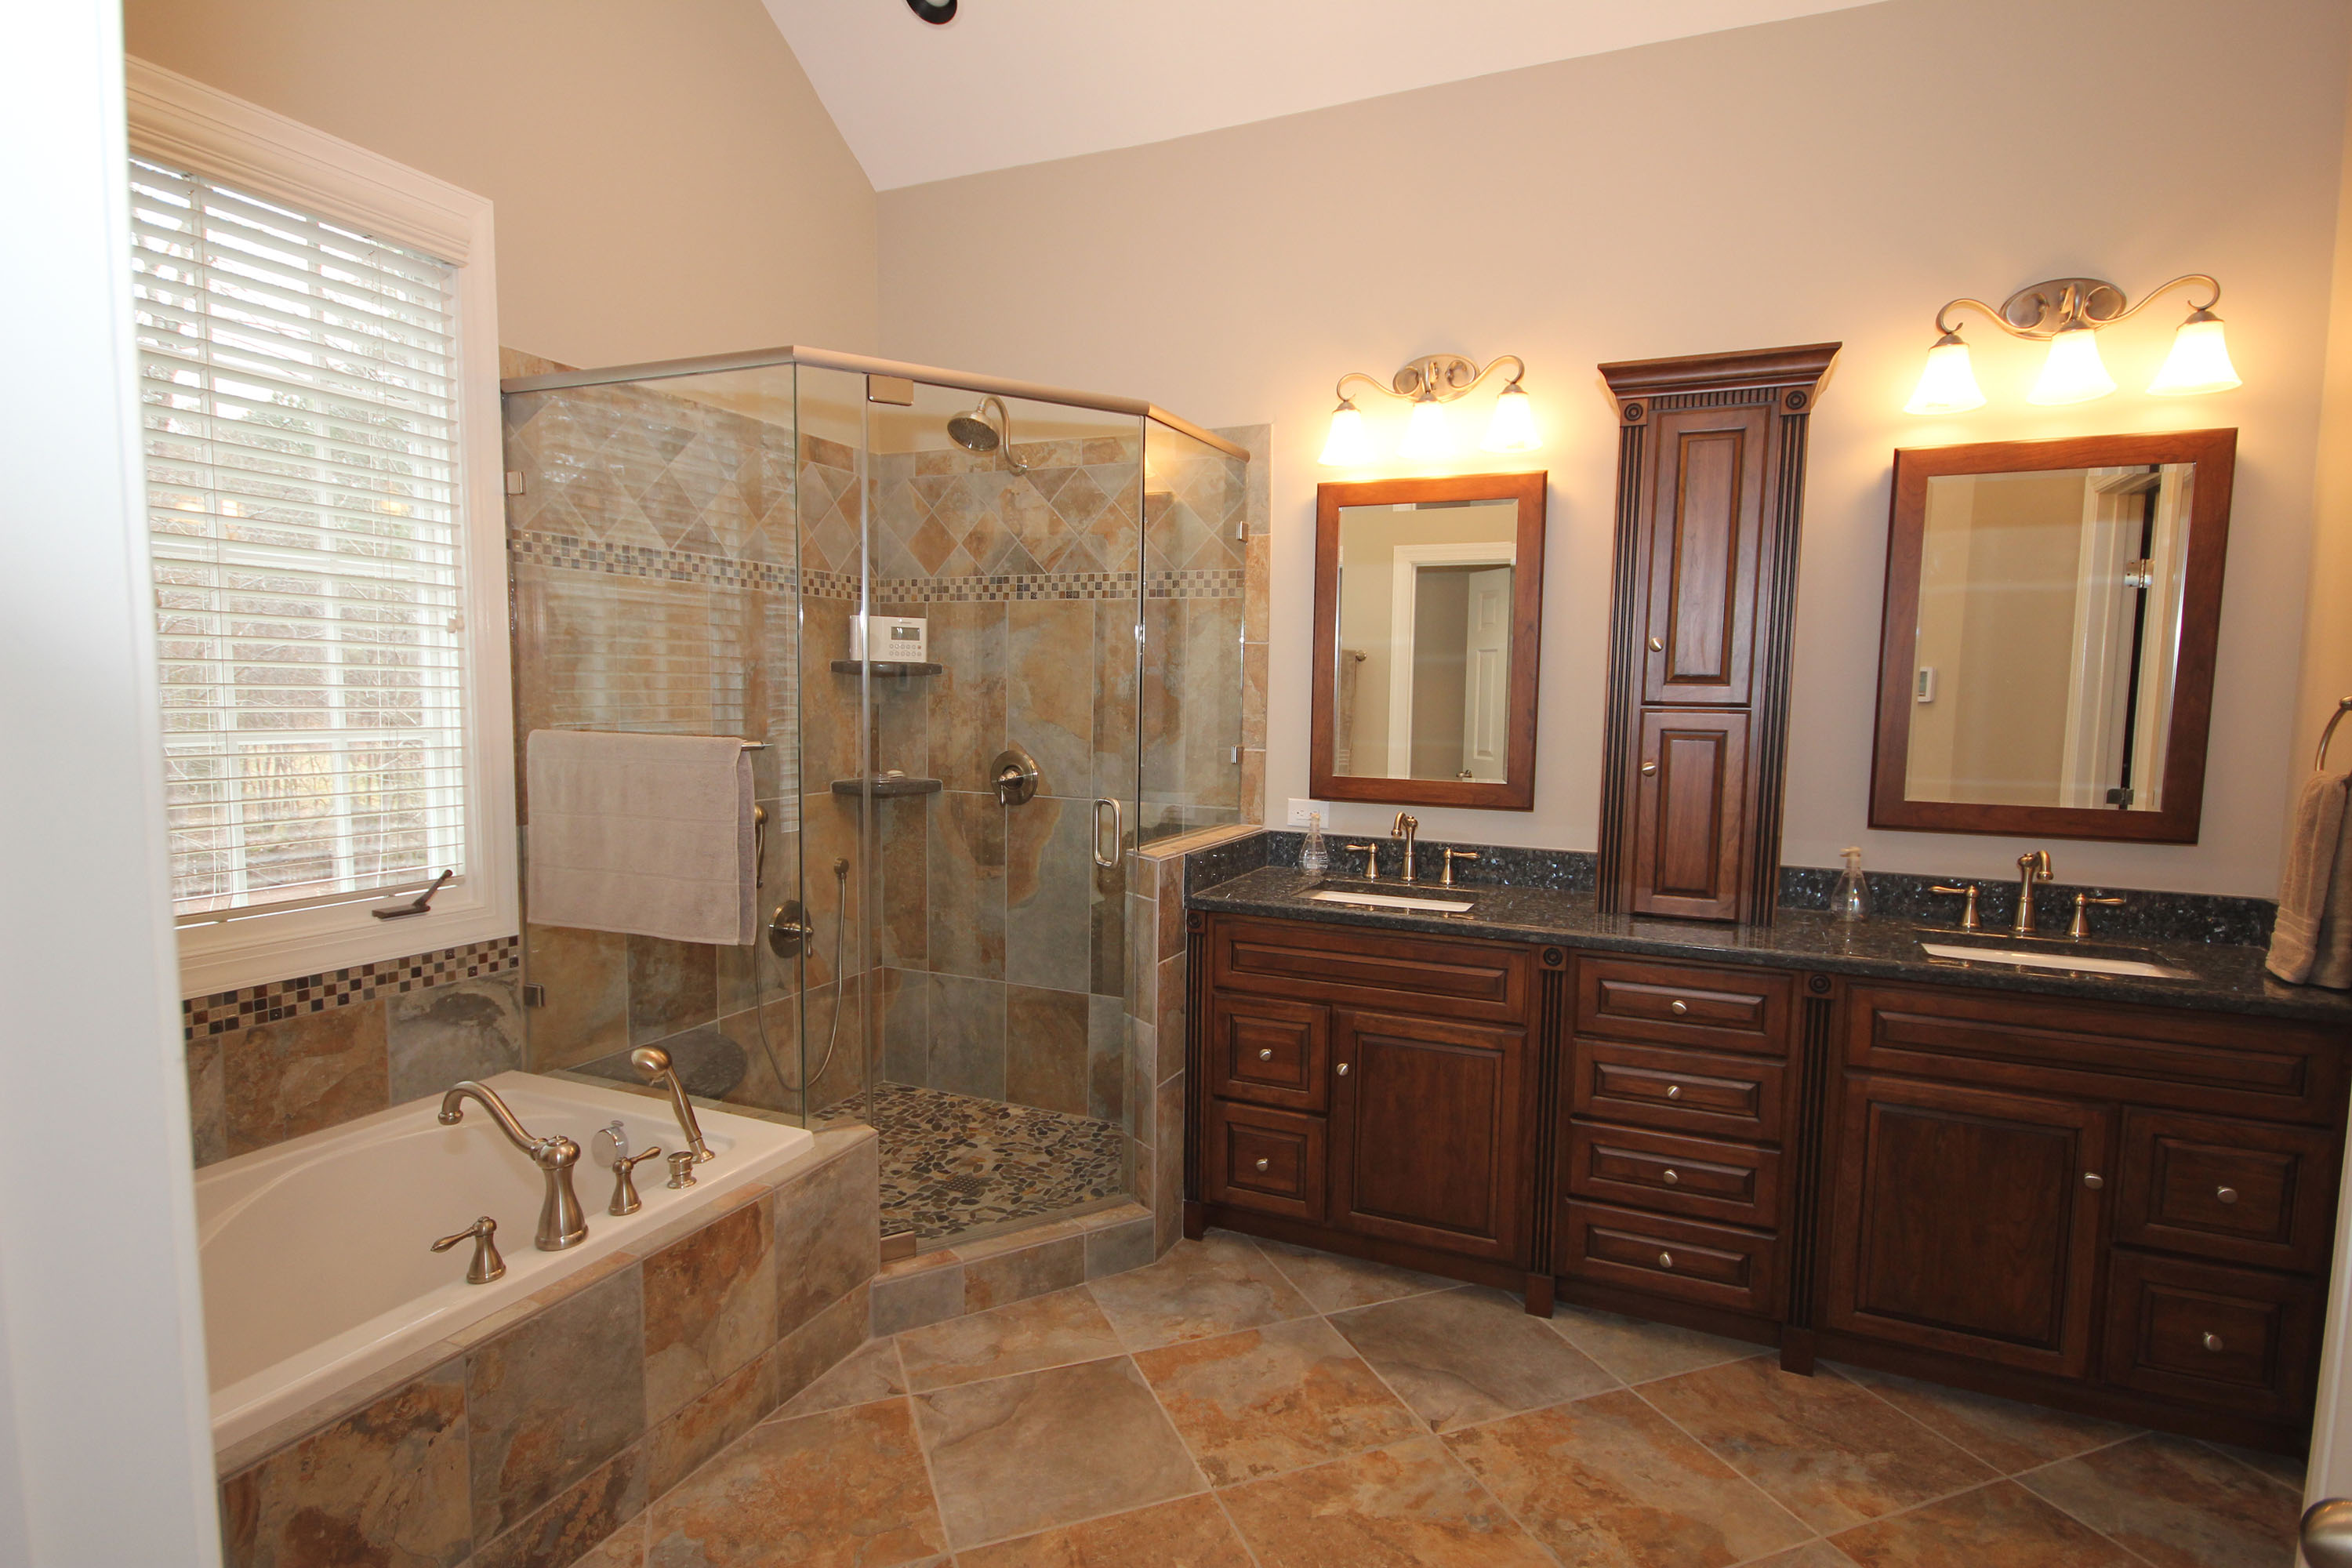 Bathroom Remodeling Raleigh bathroom remodeling raleigh